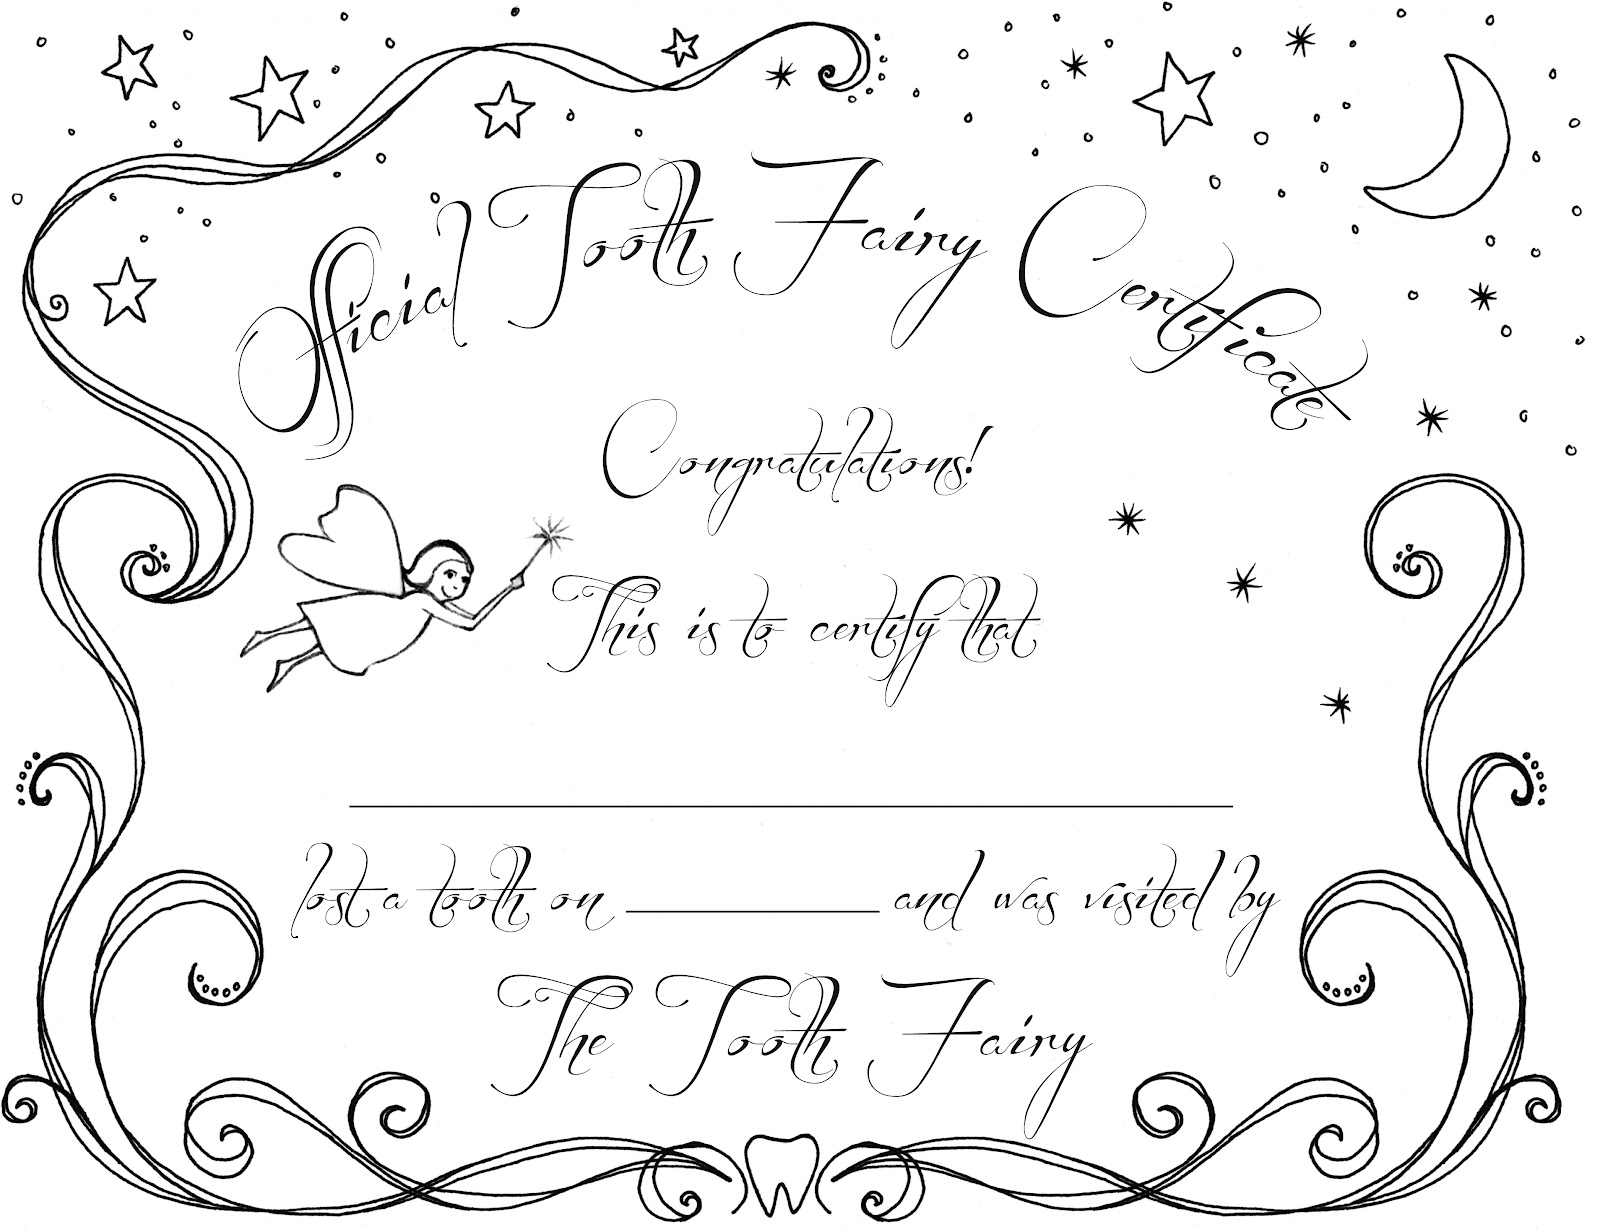 Ccpatchwork tooth fairy certificate for Free printable tooth fairy certificate template